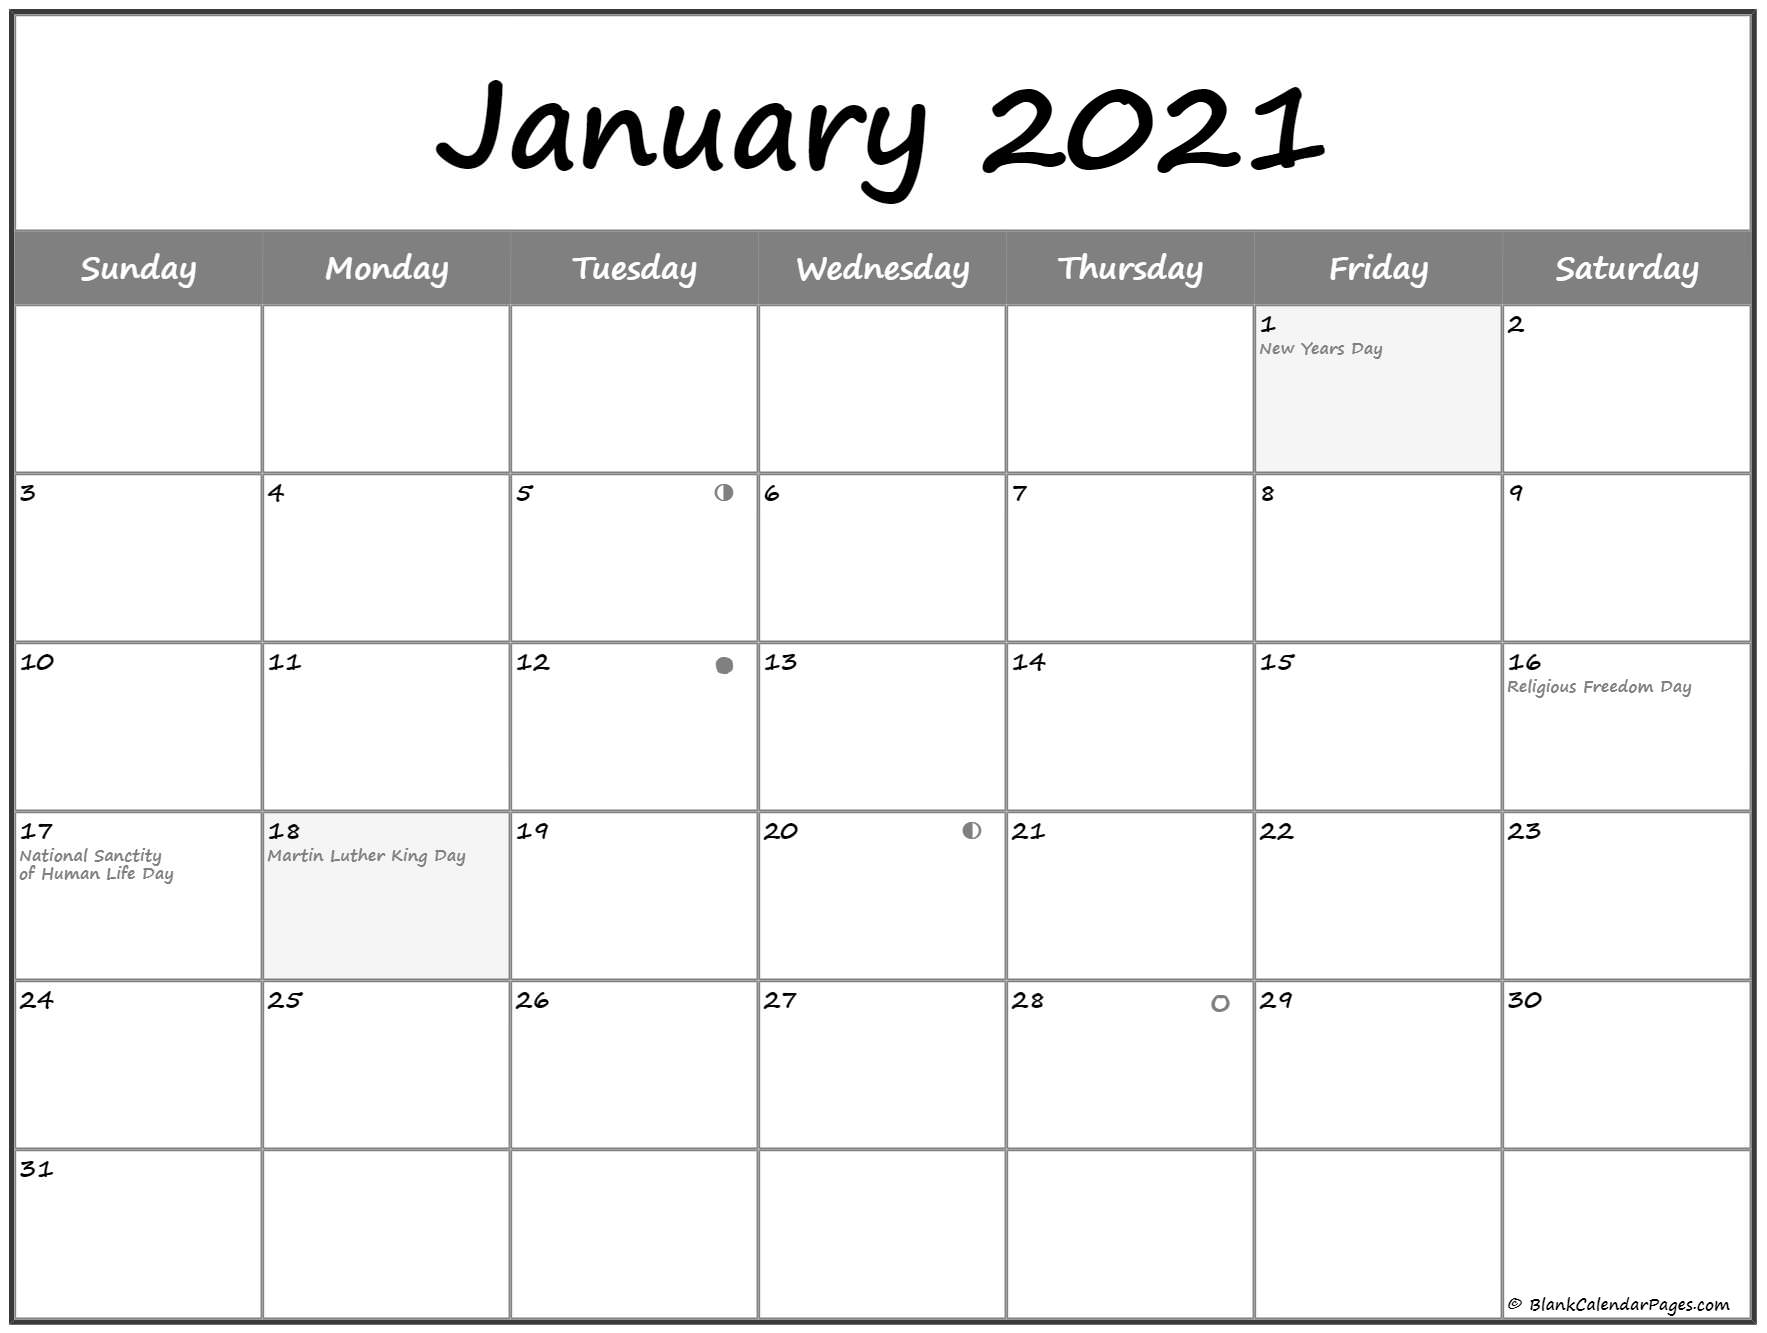 January 2021 Lunar Calendar | Moon Phase Calendar Inside Moon Calendar 2021 Name And Date For Kids